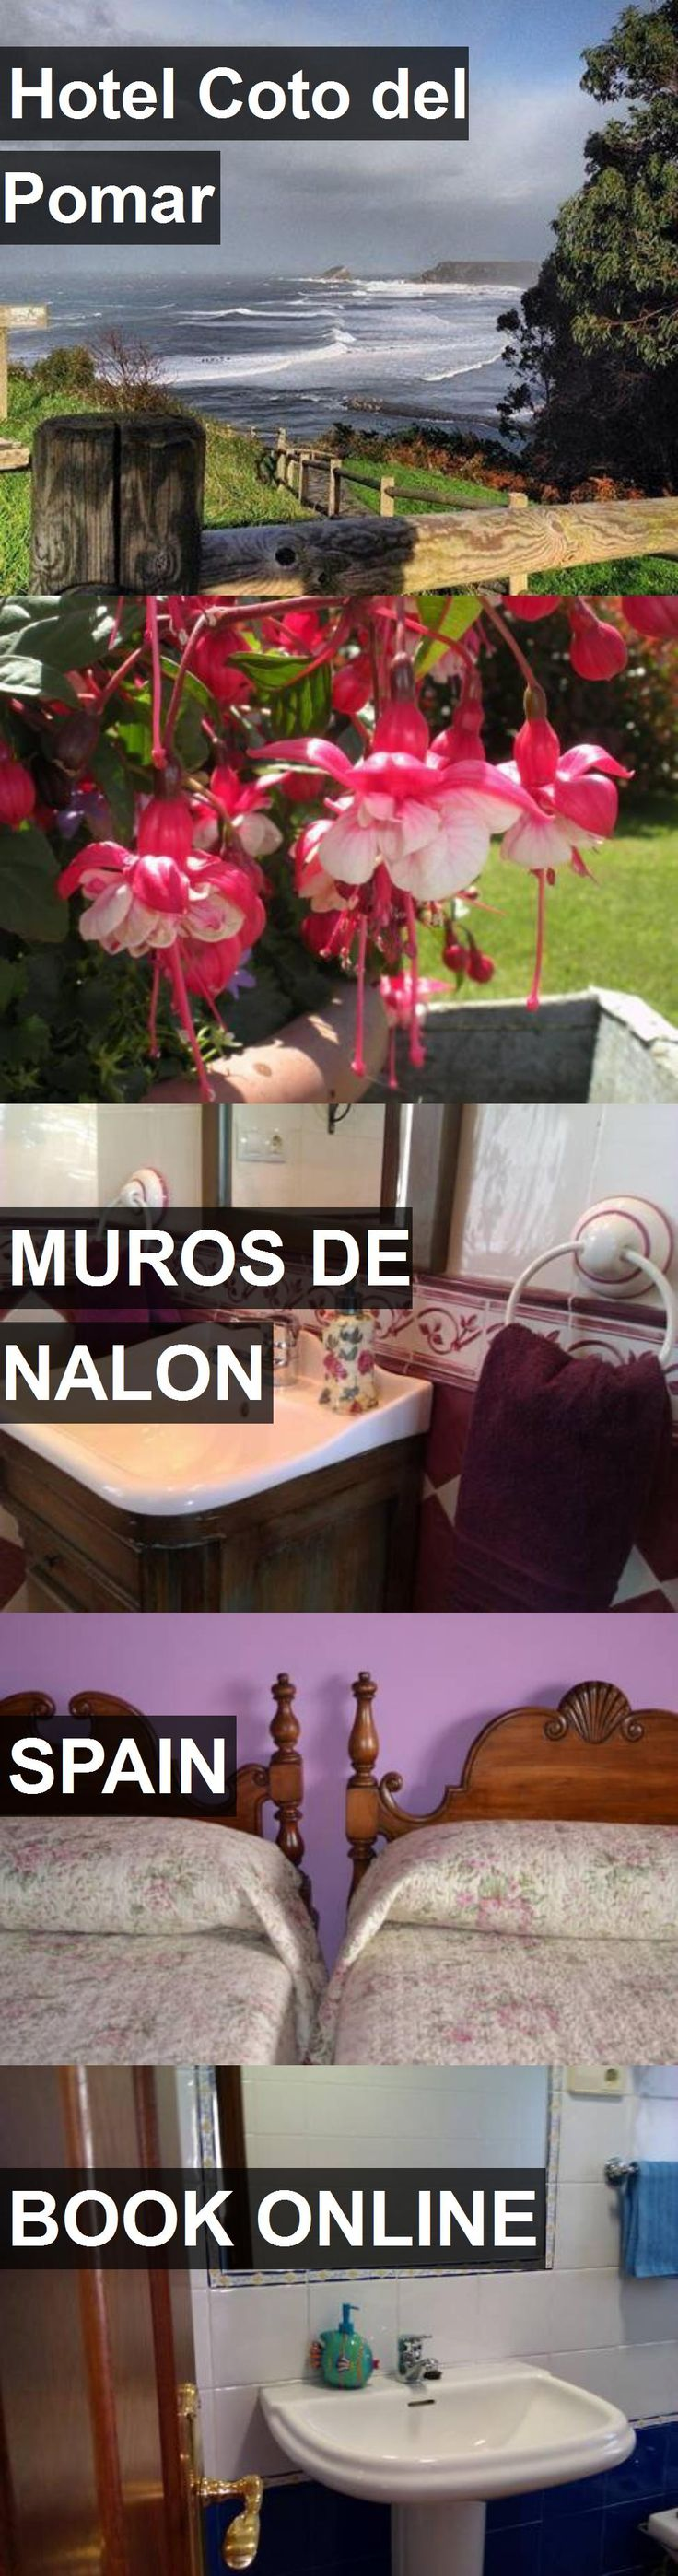 Hotel Coto del Pomar in Muros de Nalon, Spain. For more information, photos, reviews and best prices please follow the link. #Spain #MurosdeNalon #travel #vacation #hotel